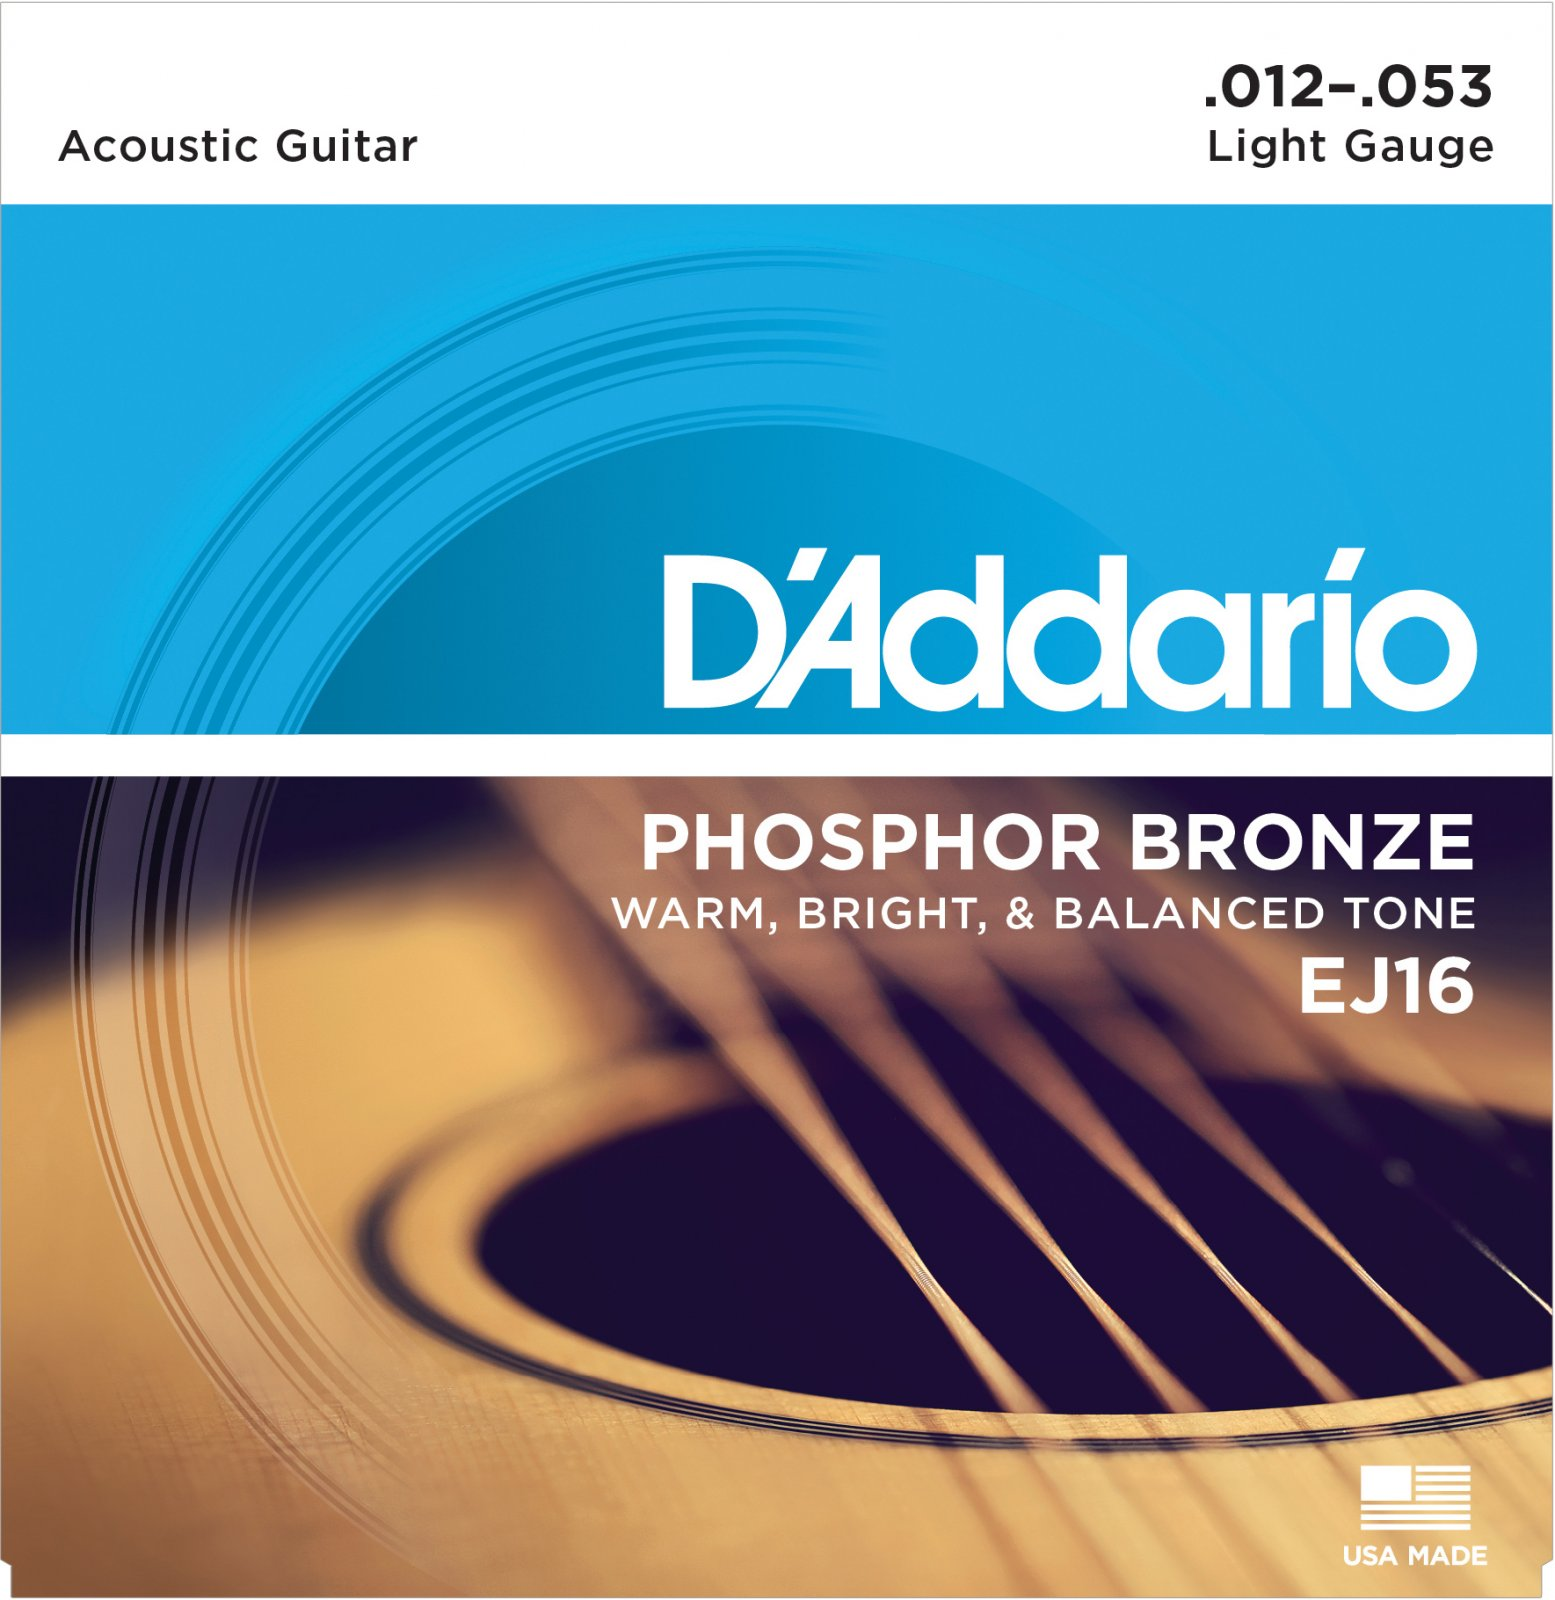 D'Addario Phosphor Bronze EJ16 Acoustic Guitar Strings, Light, 12-53